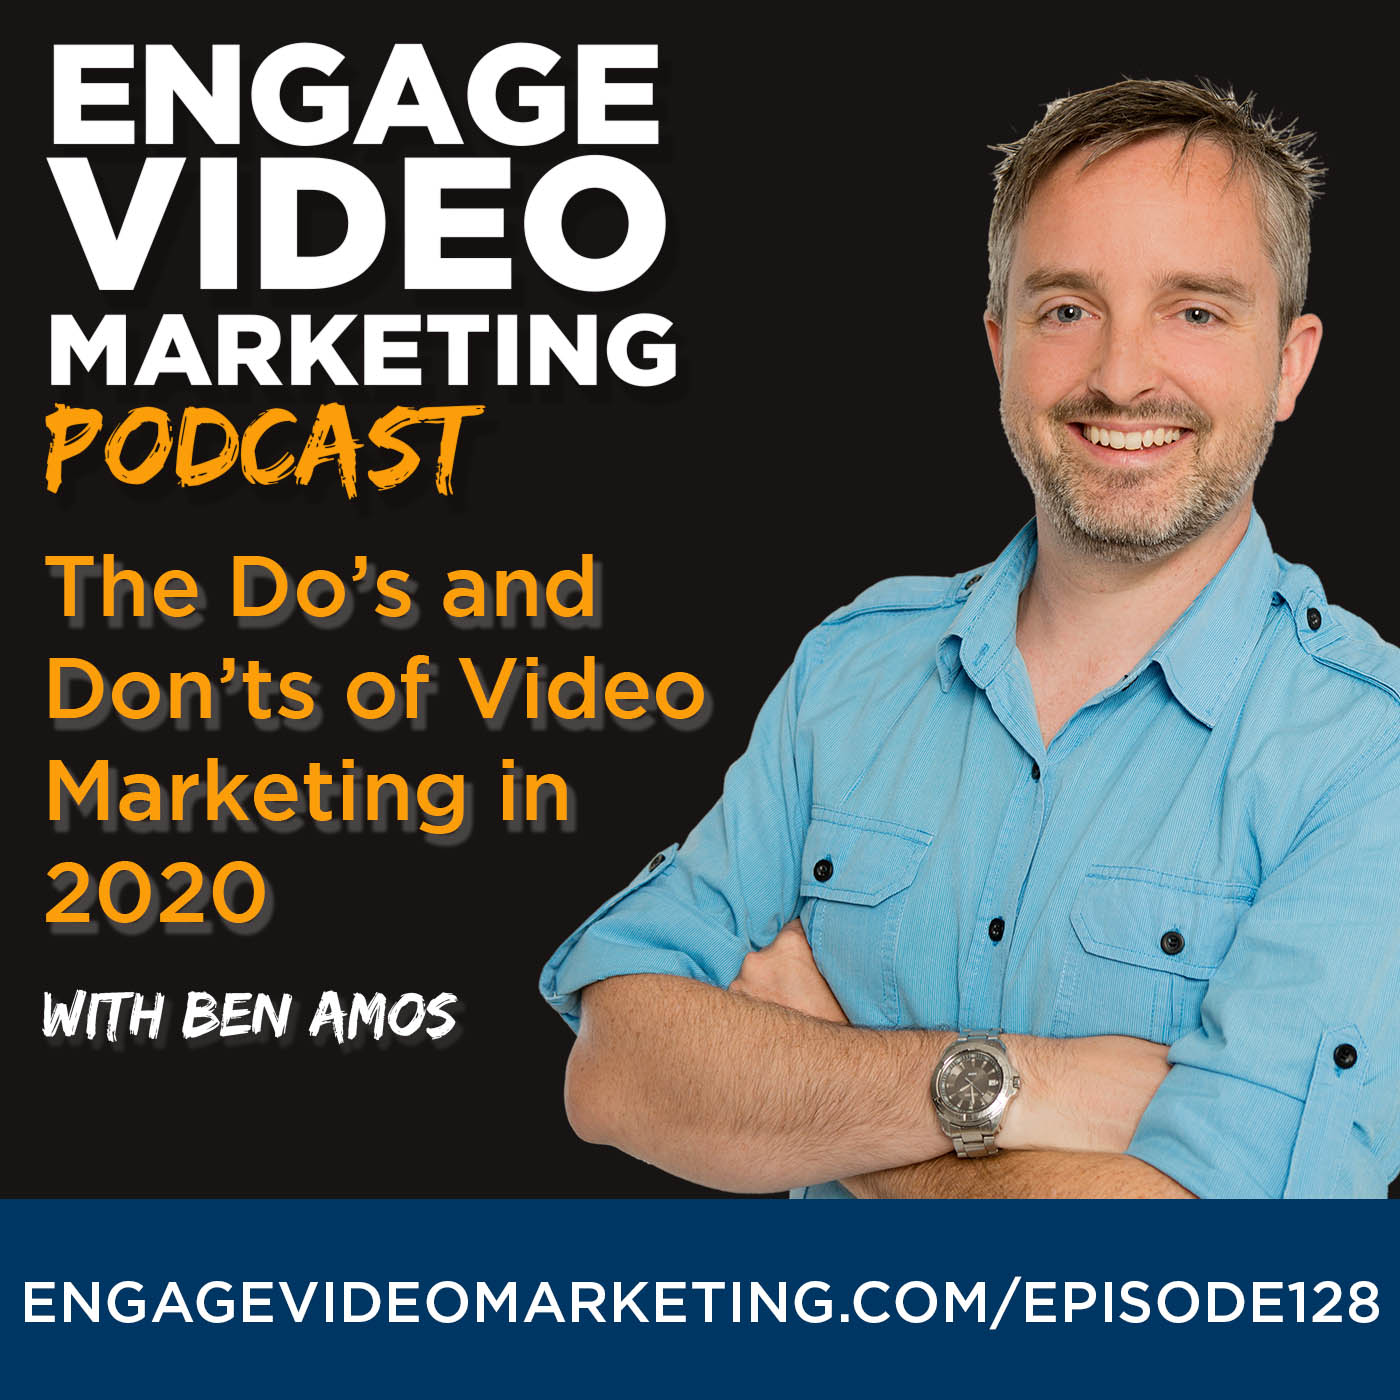 The Do's and Don'ts of Video Marketing in 2020